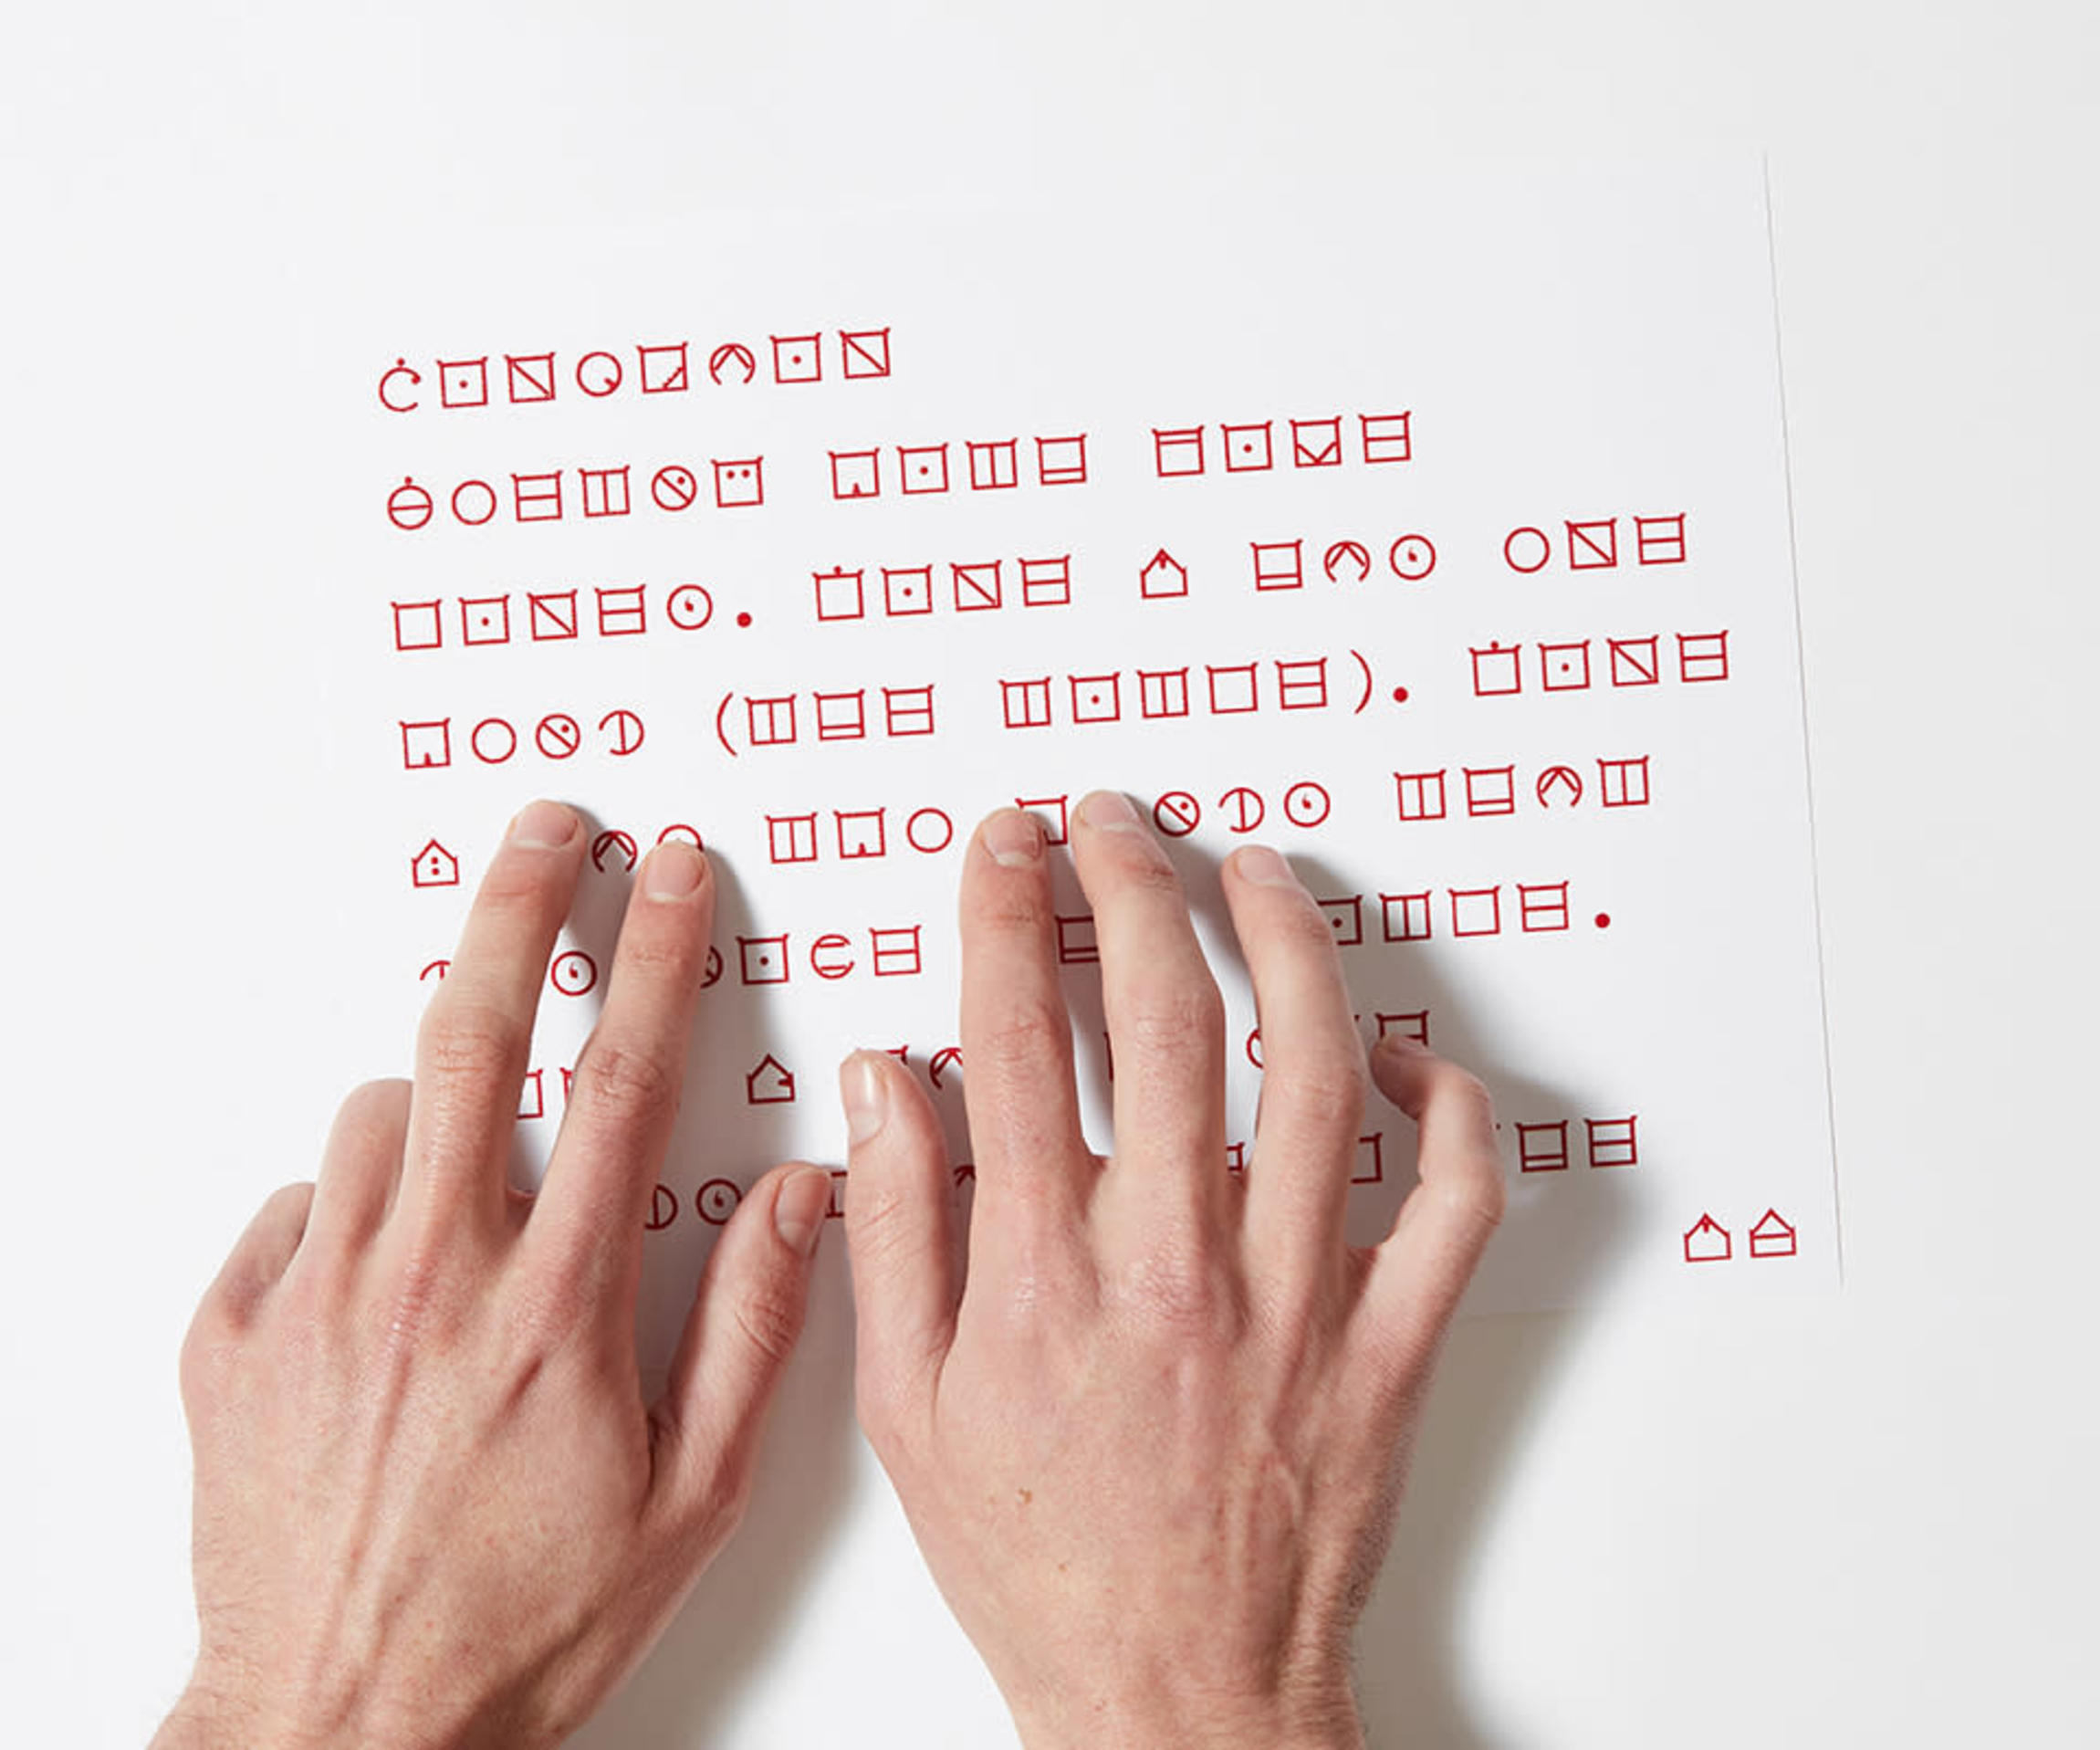 ELIA is the New Tactile Reading System Trying to Replace Braille